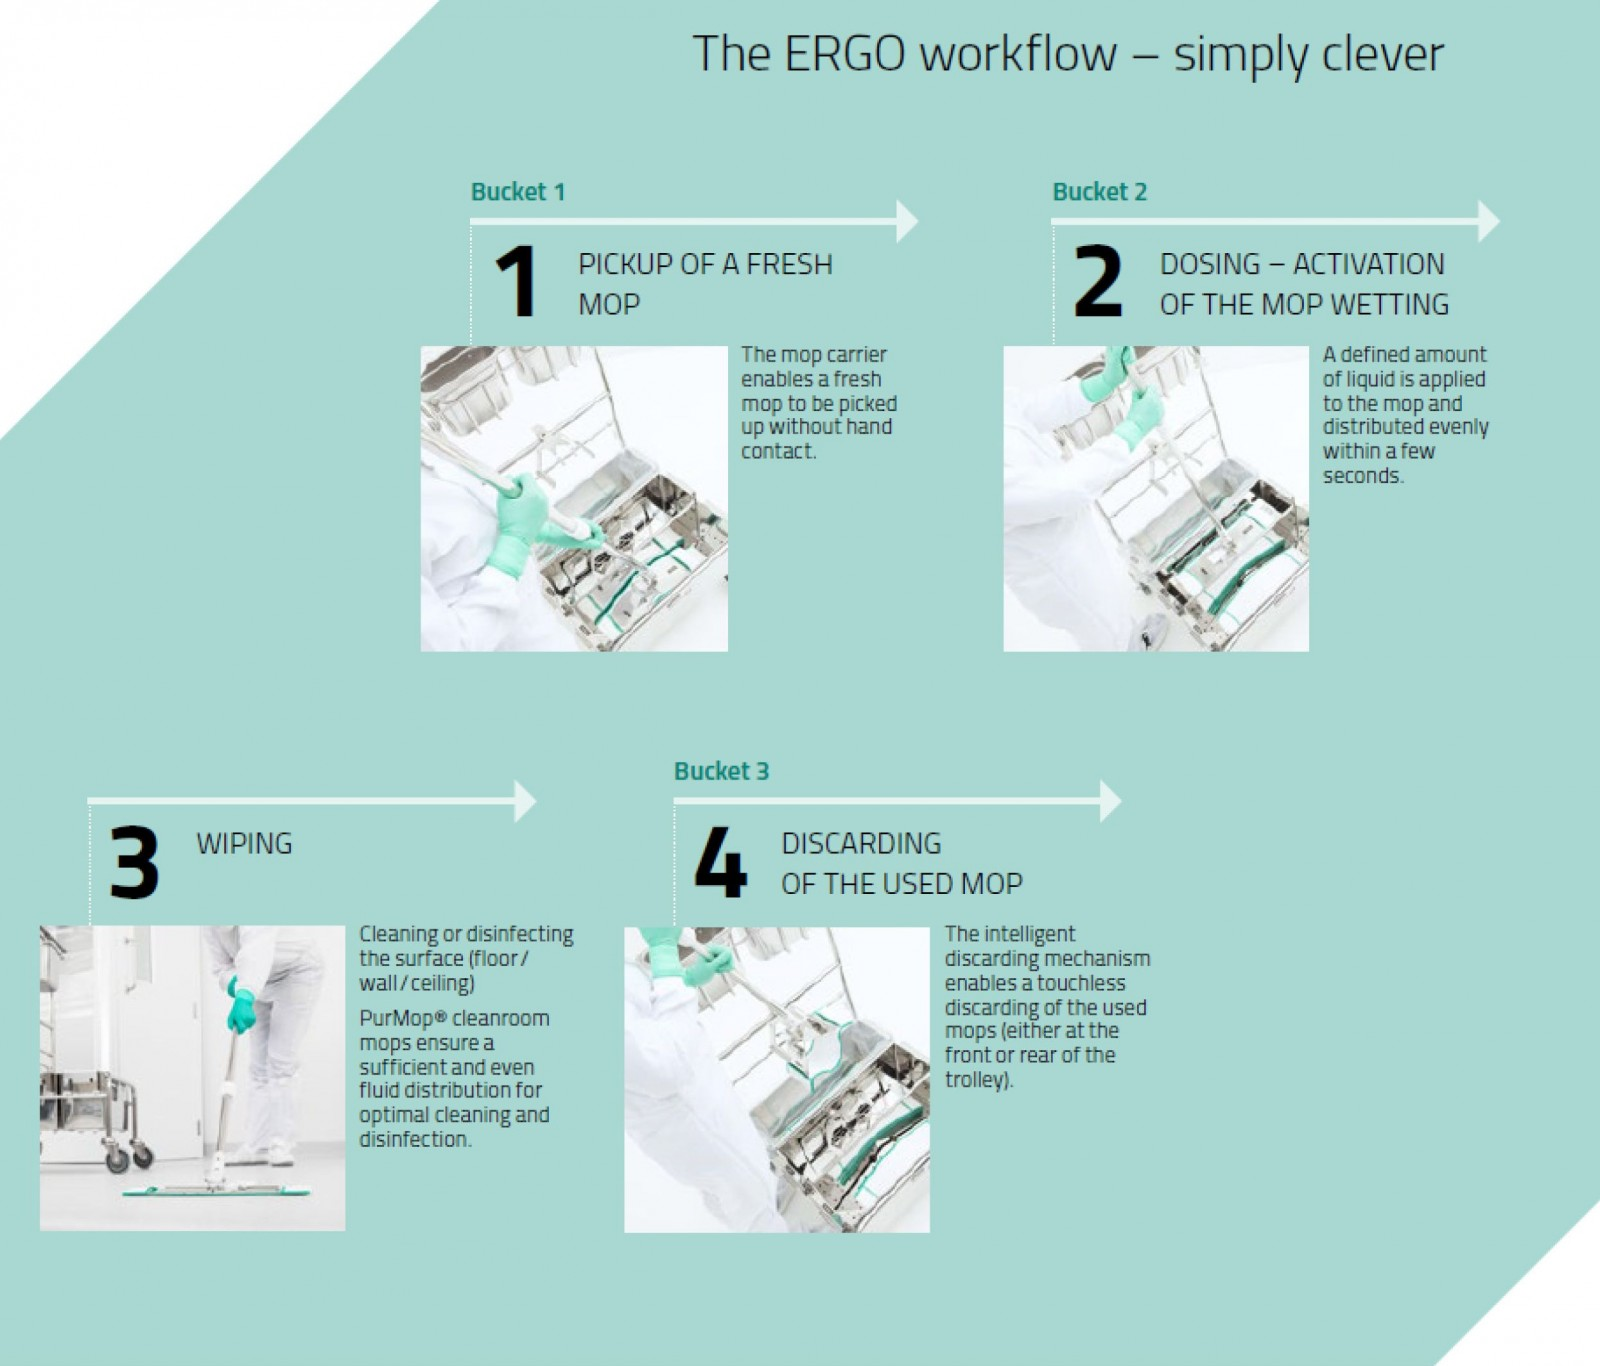 The ERGO workflow